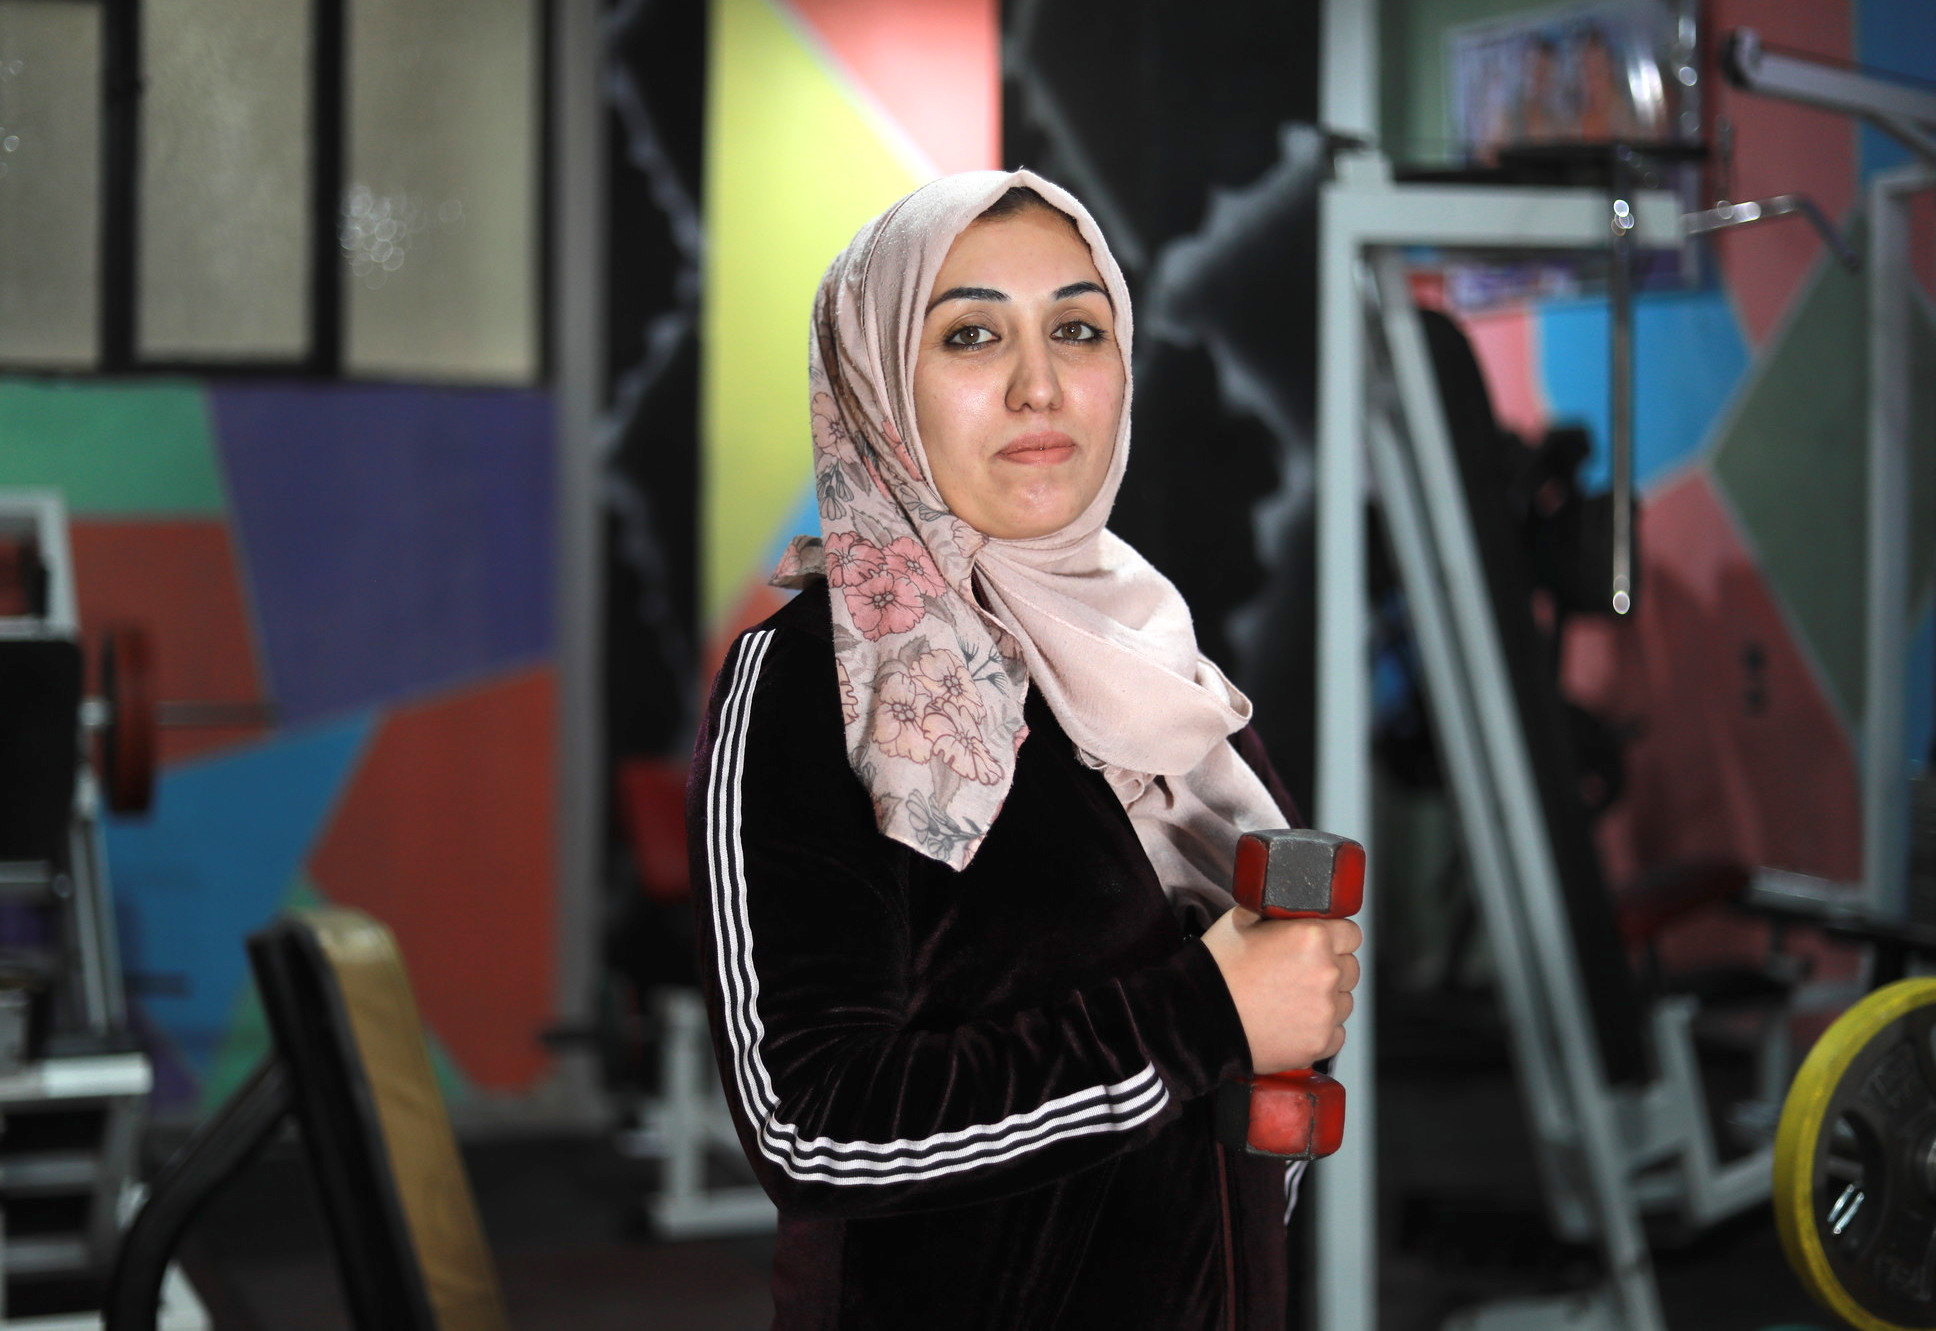 Woman holds a dumbbell in a gym.